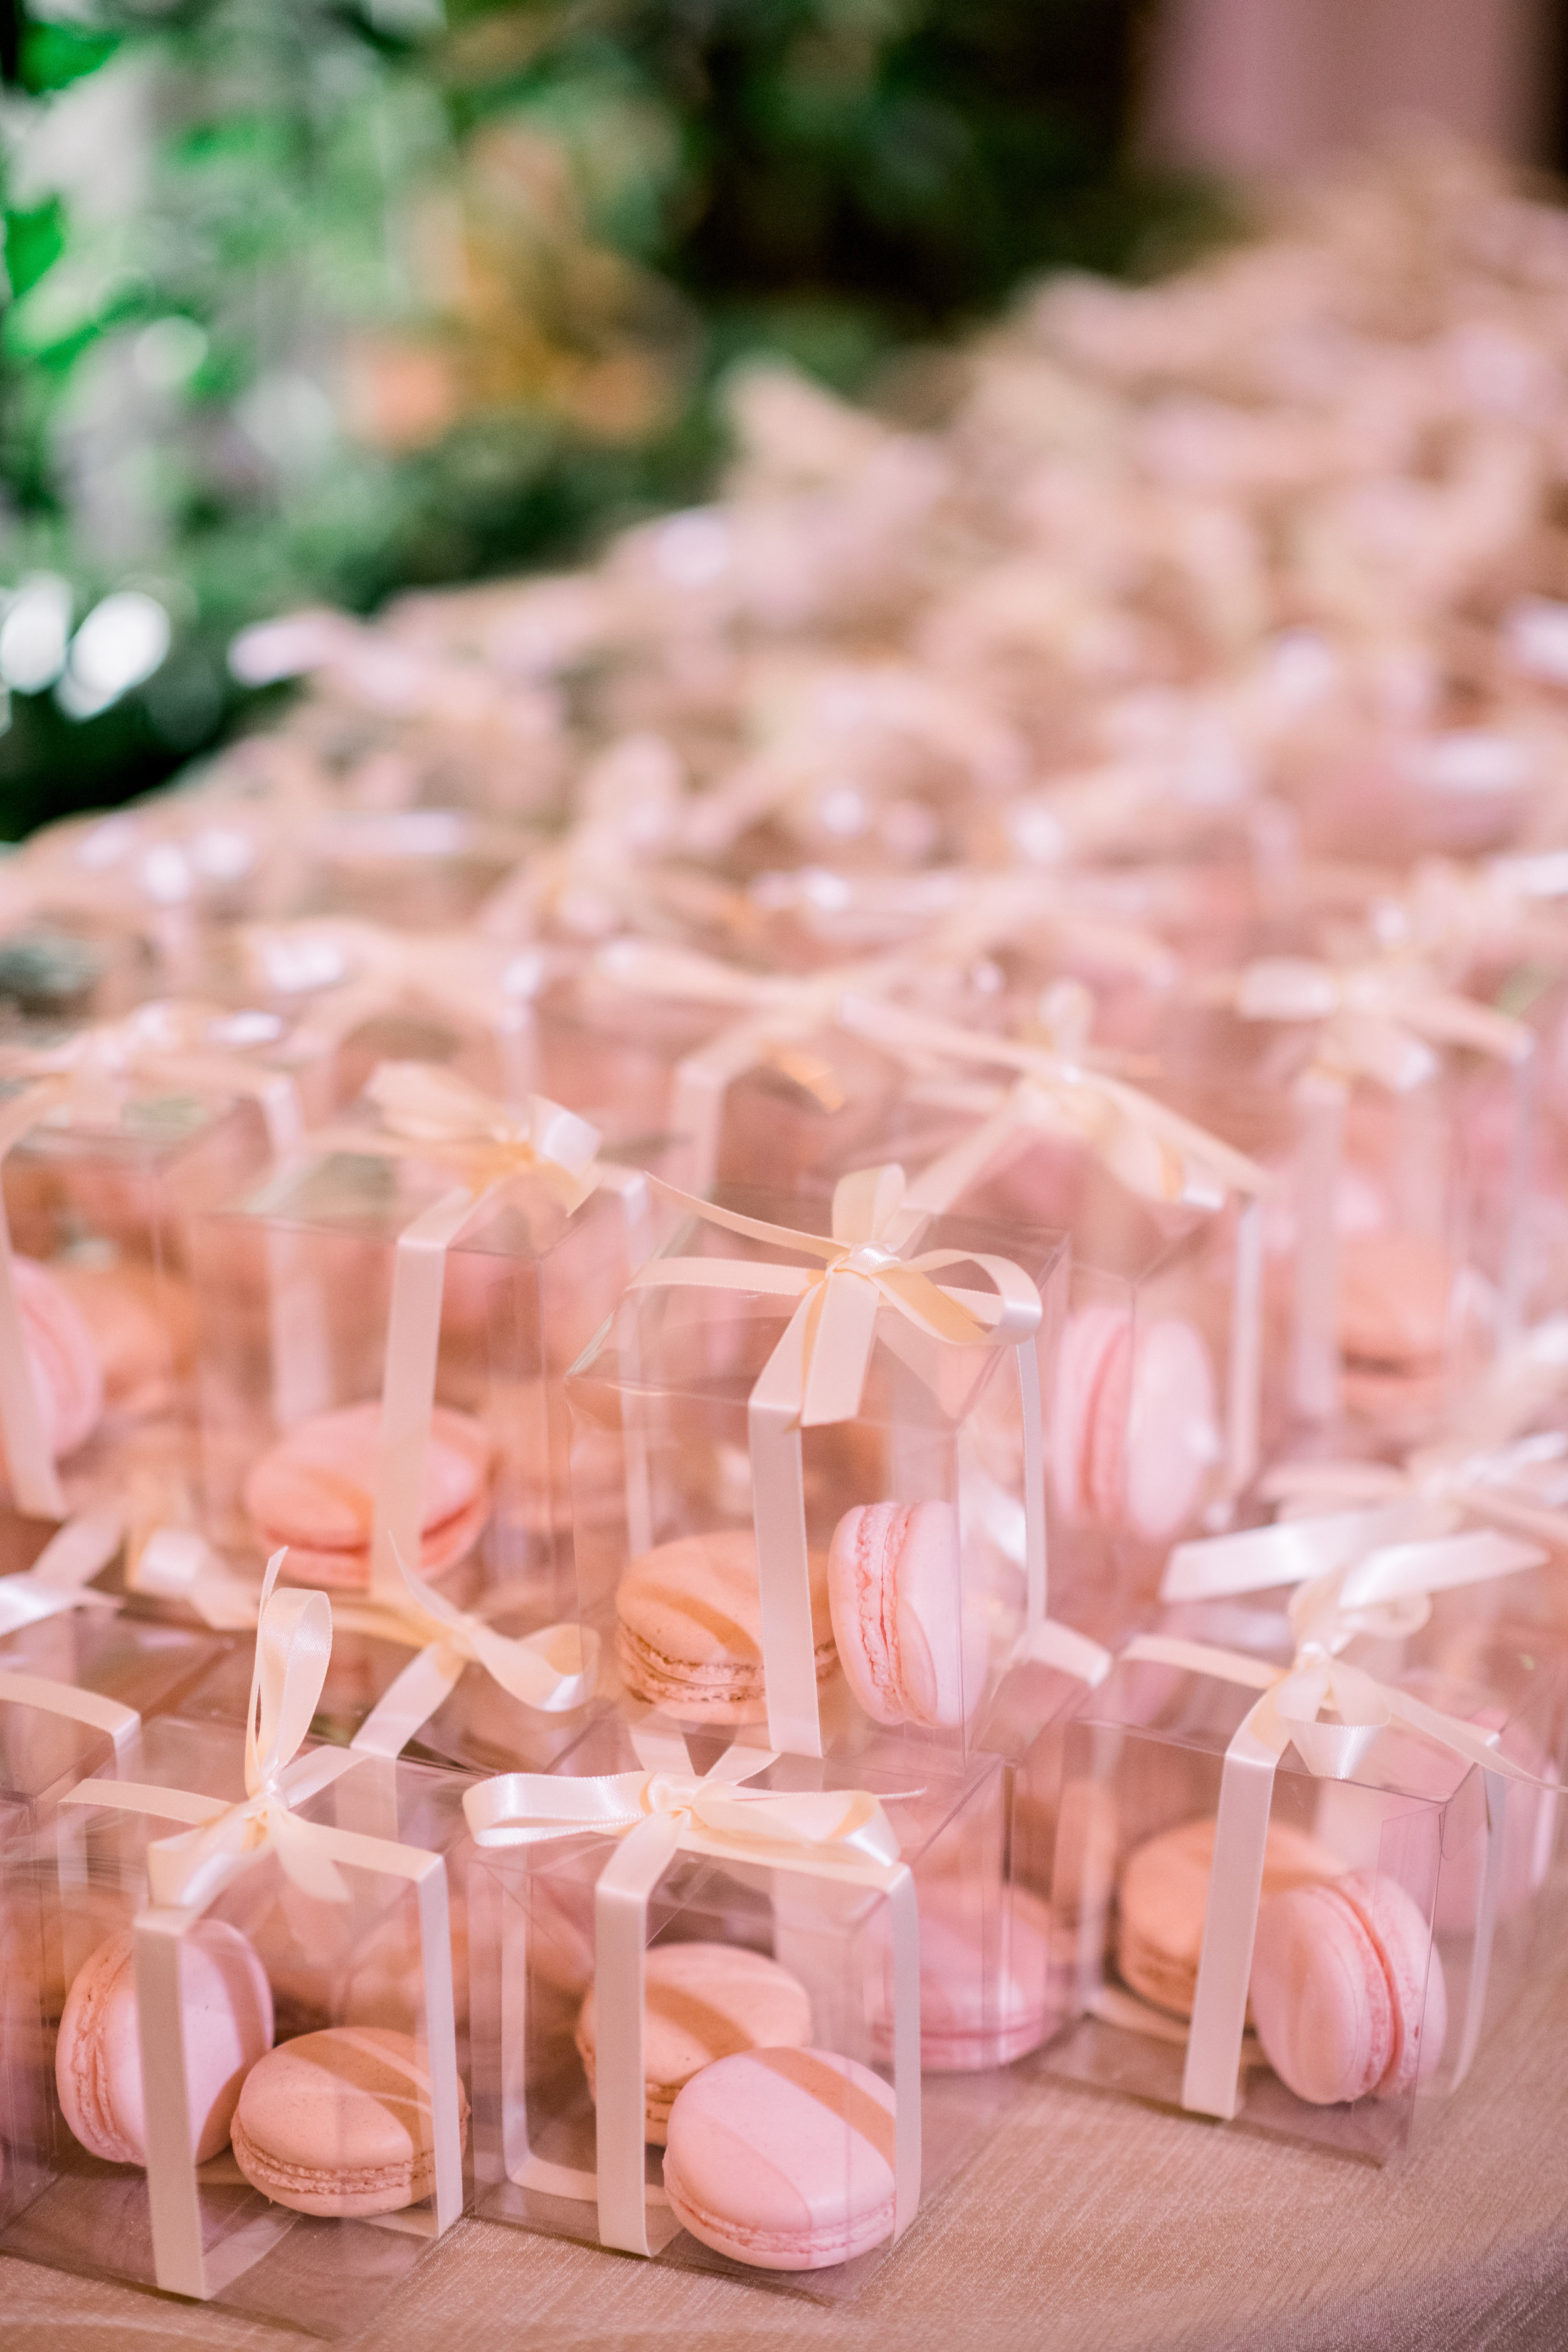 Pink macaron wedding favors for Pittsburgh wedding at Hotel Monaco planned by Exhale Events. Find more modern wedding ideas at exhale-events.com!